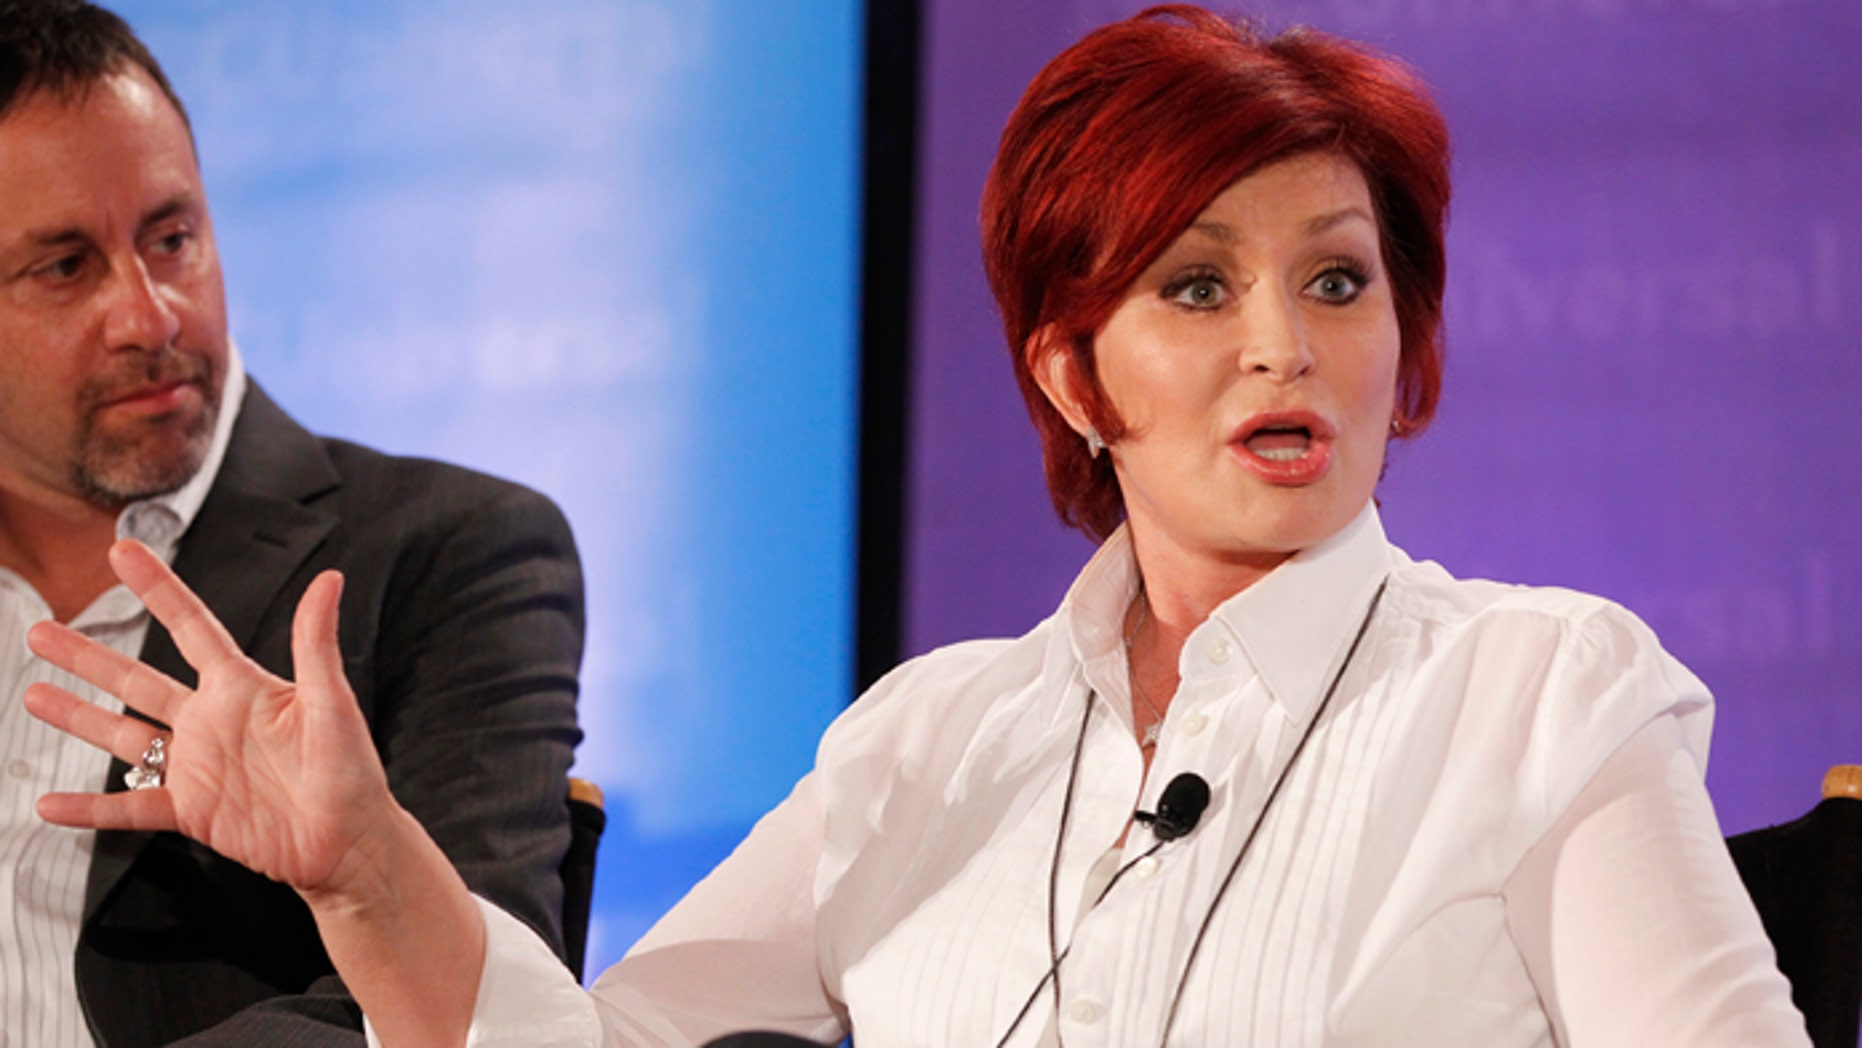 """Sharon Osbourne, one of the judges on """"America's Got Talent,"""" had surgery for colon cancer in 2002."""